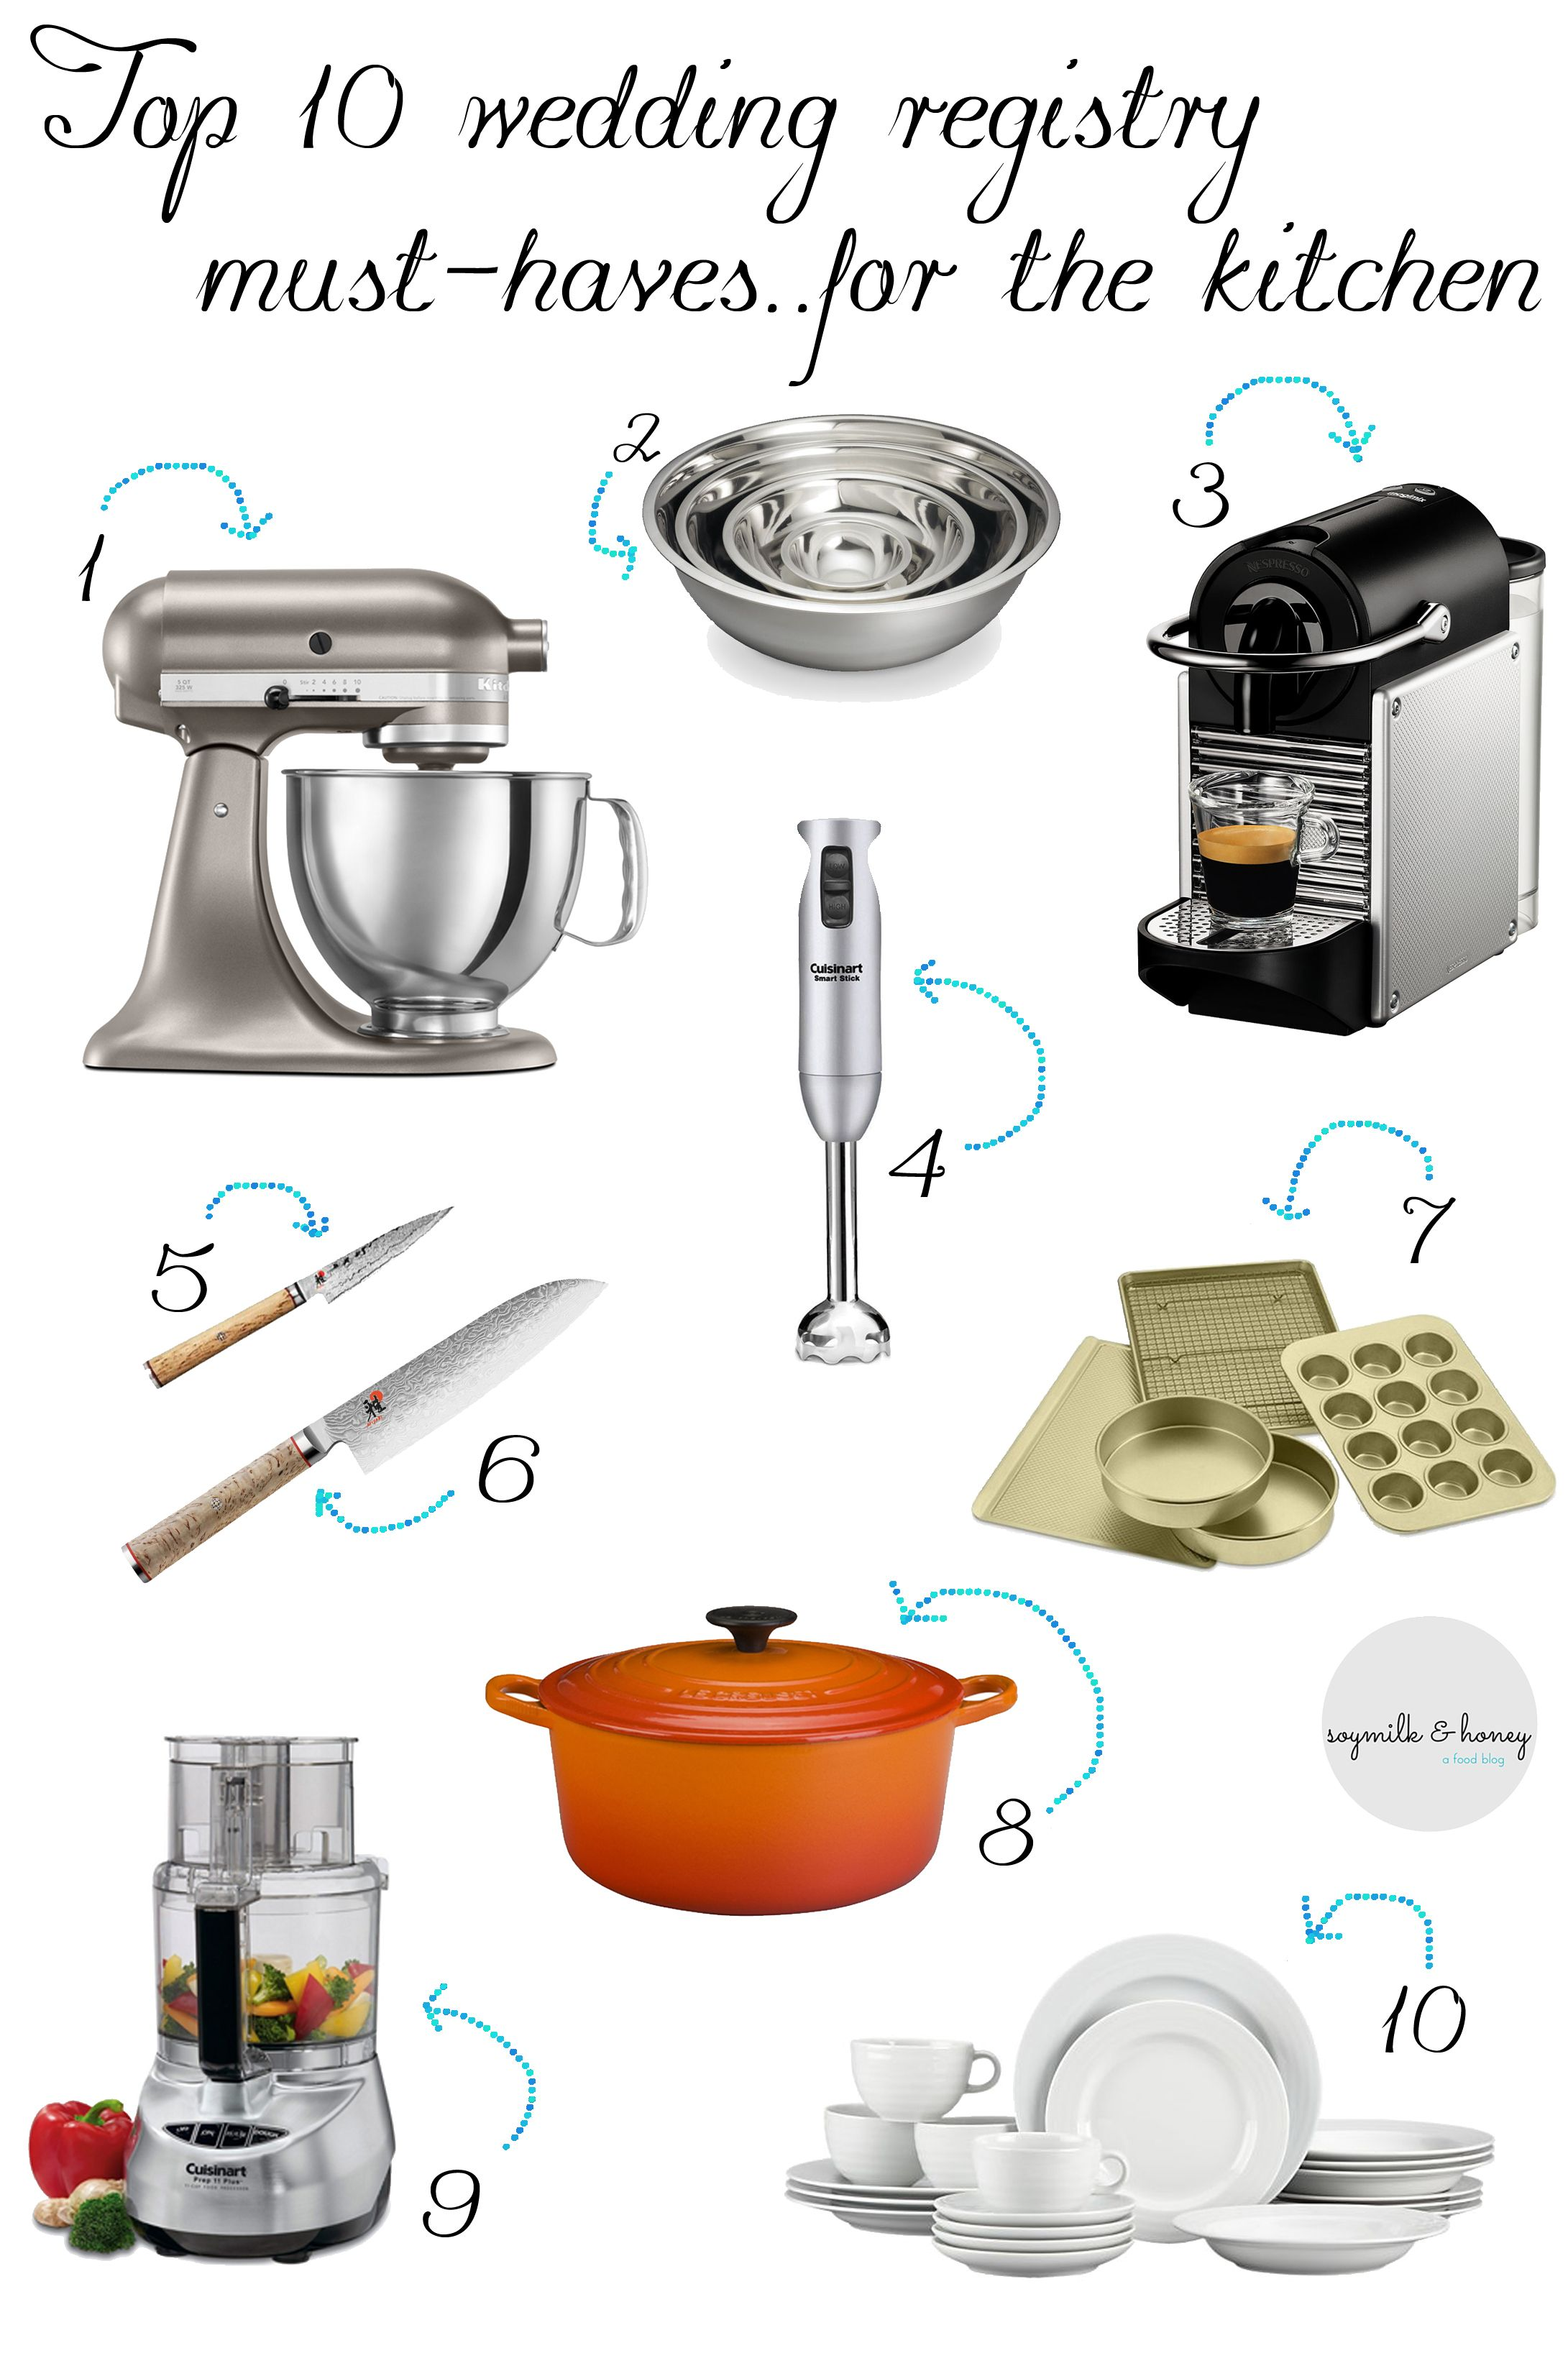 A Guide For Wedding Registries Top 10 Registry Must Haves The Kitchen